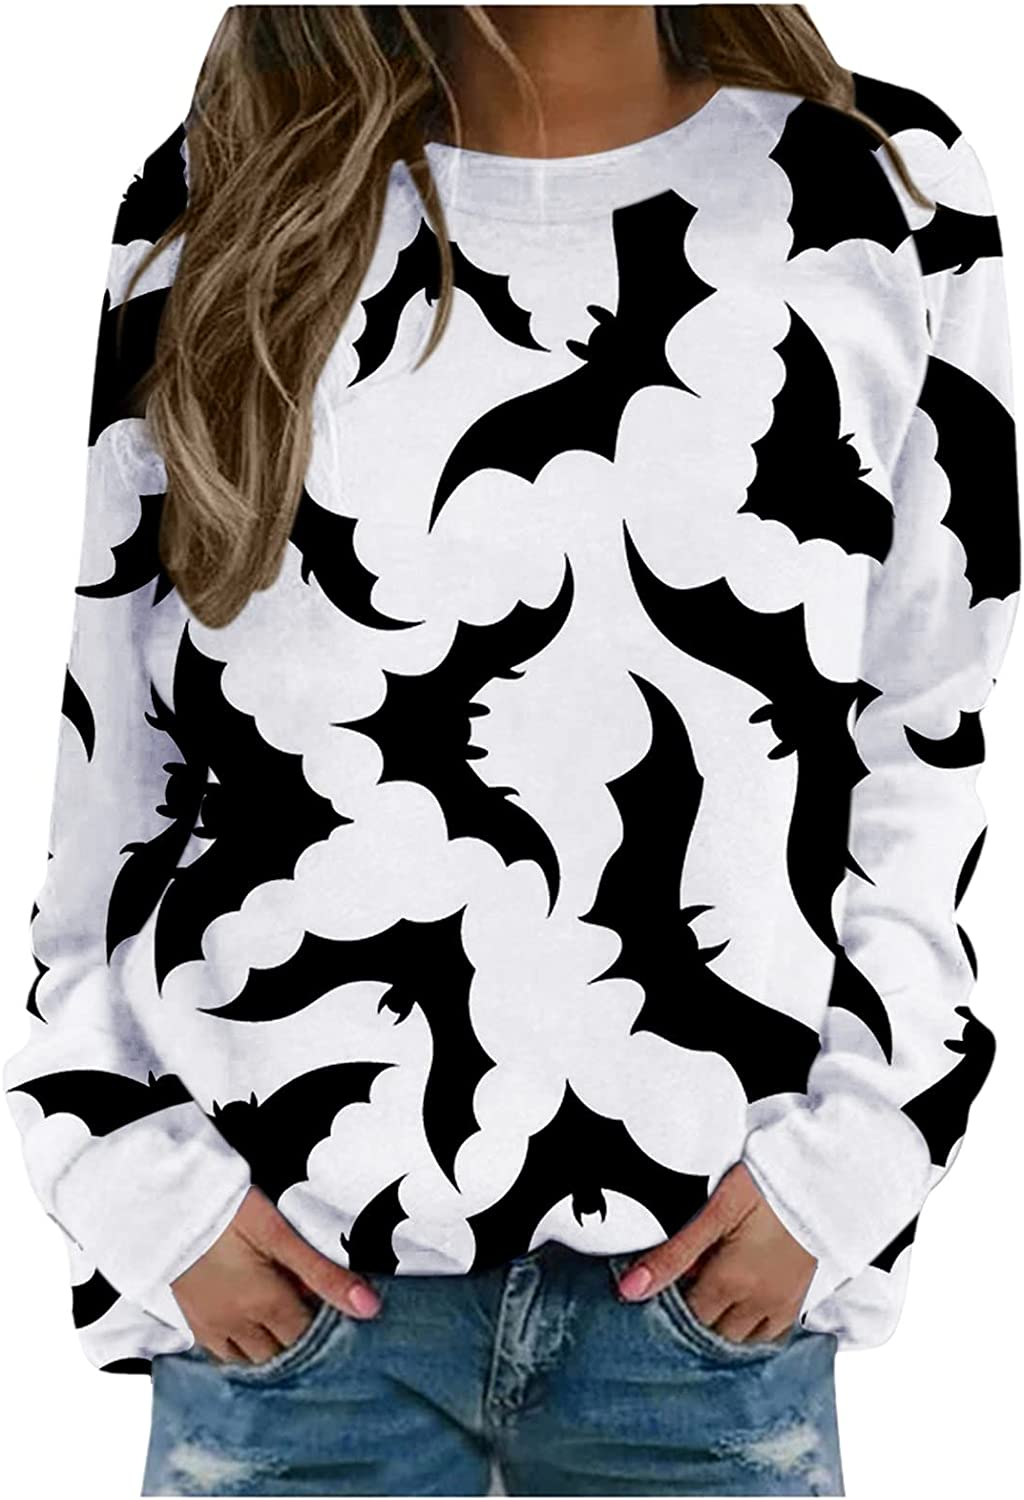 Halloween Sweatshirts for Women Crewneck Bat Print Pullover Tops Long Sleeve Sweater Cute Funny Goth Shirts Loose Fit